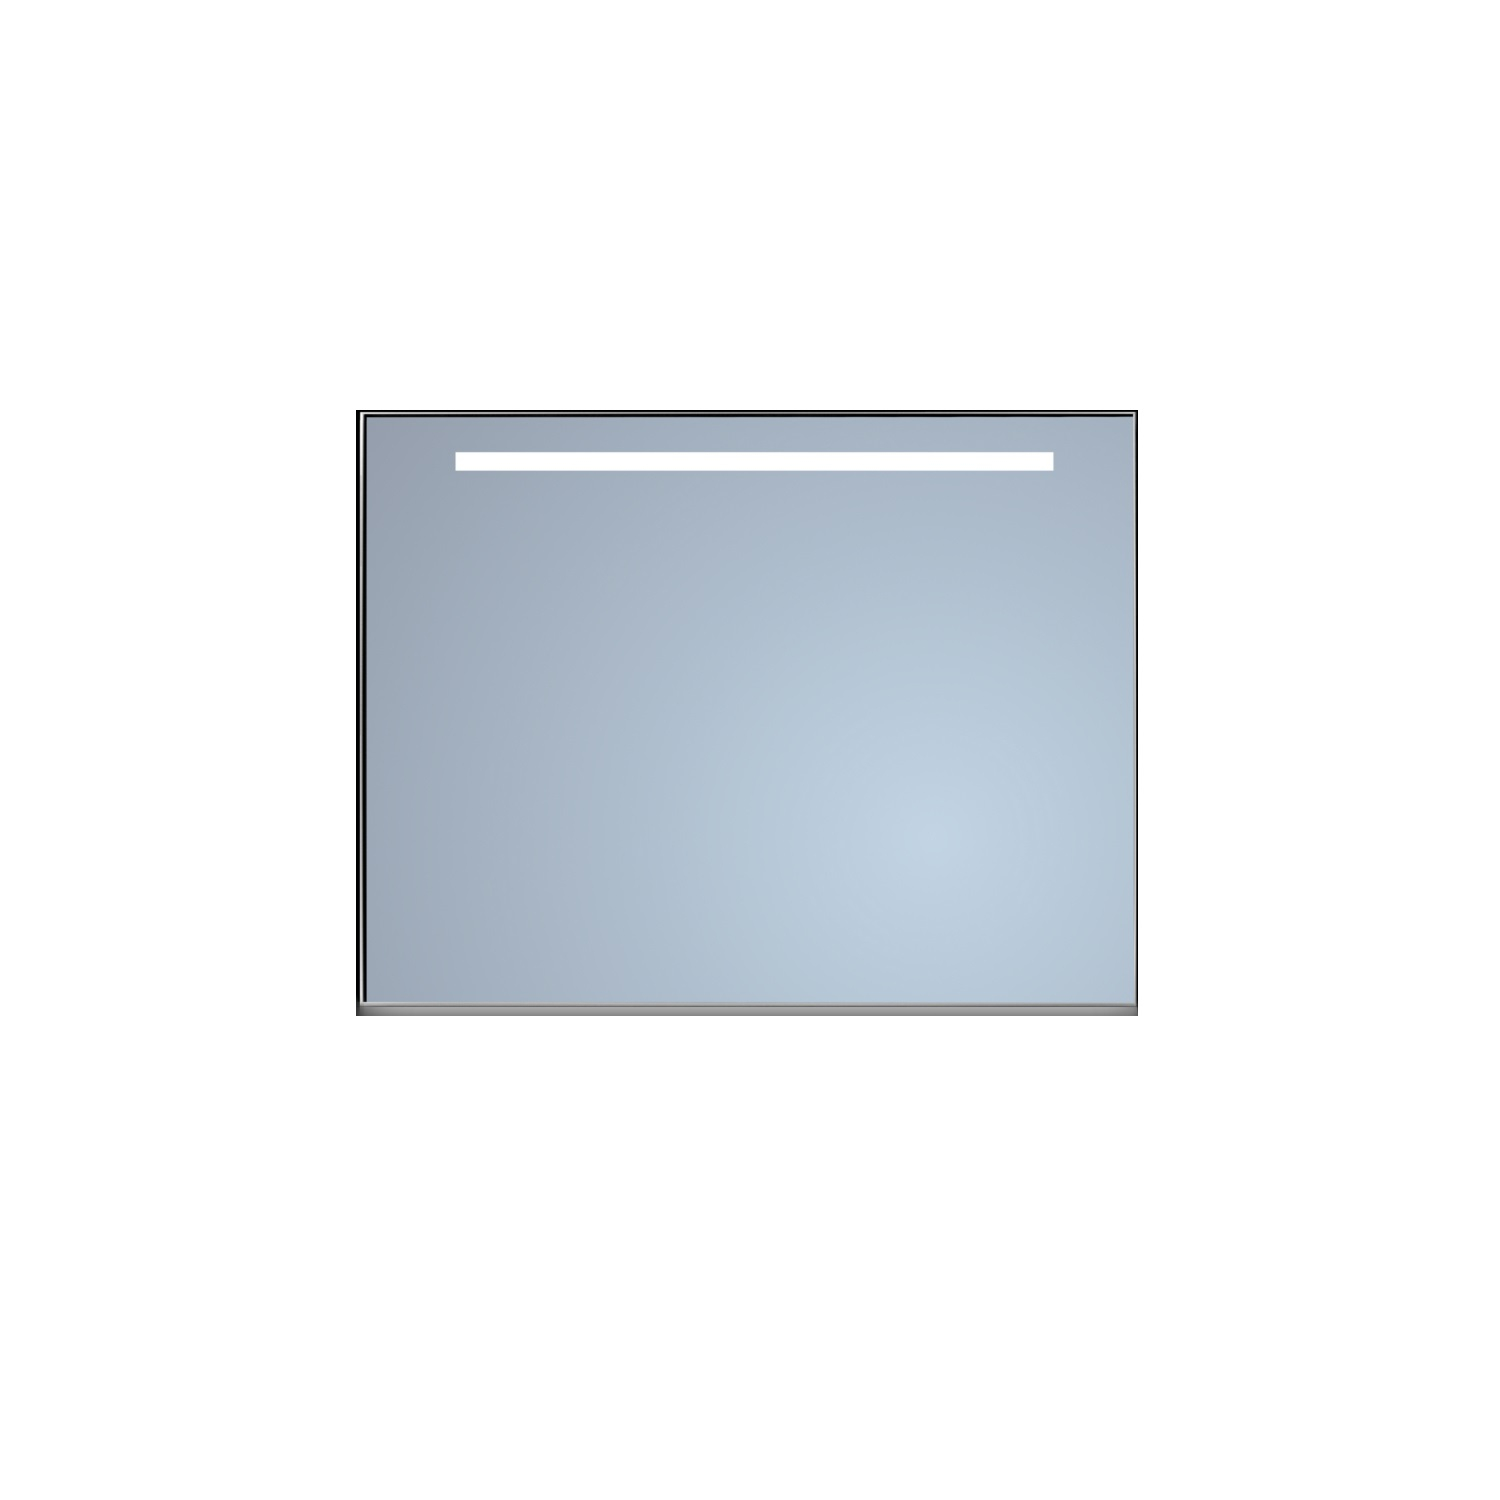 Badkamerspiegel Sanicare Q-Mirrors Ambiance en 'Cold White' LED-verlichting 70x85x3,5 Chroom Omlijsting